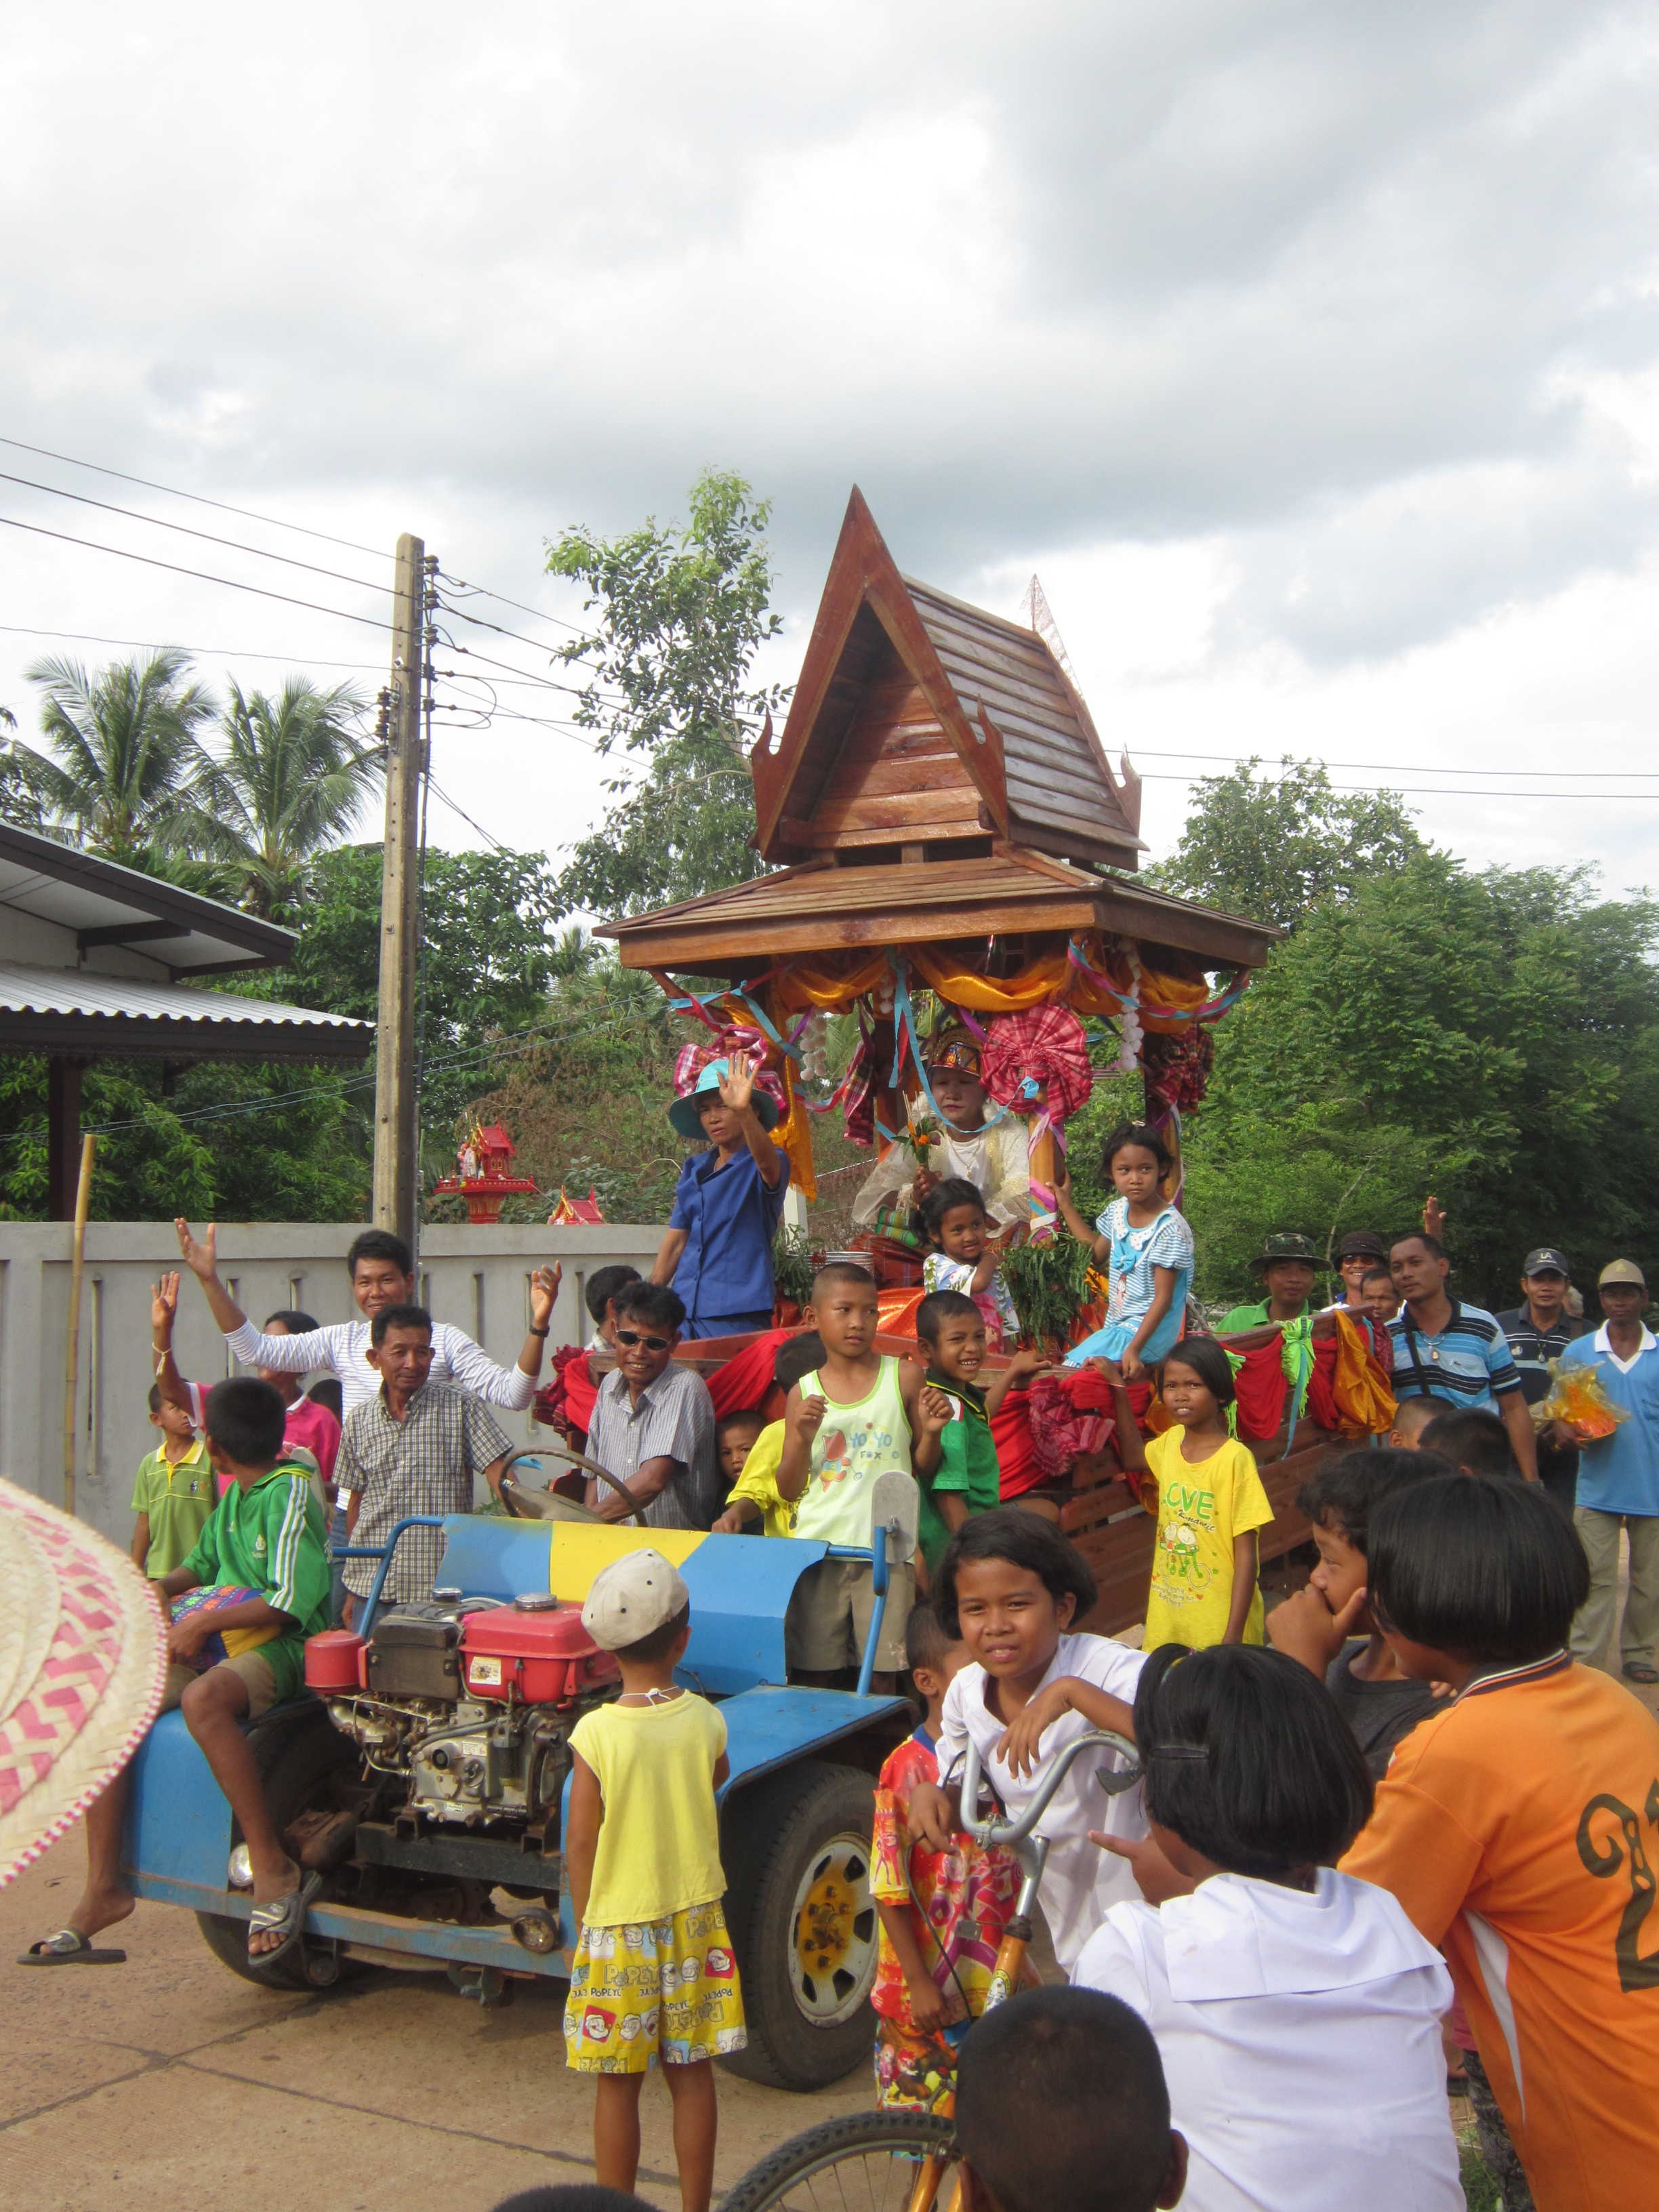 Monk procession in Nong Weang, Thailand